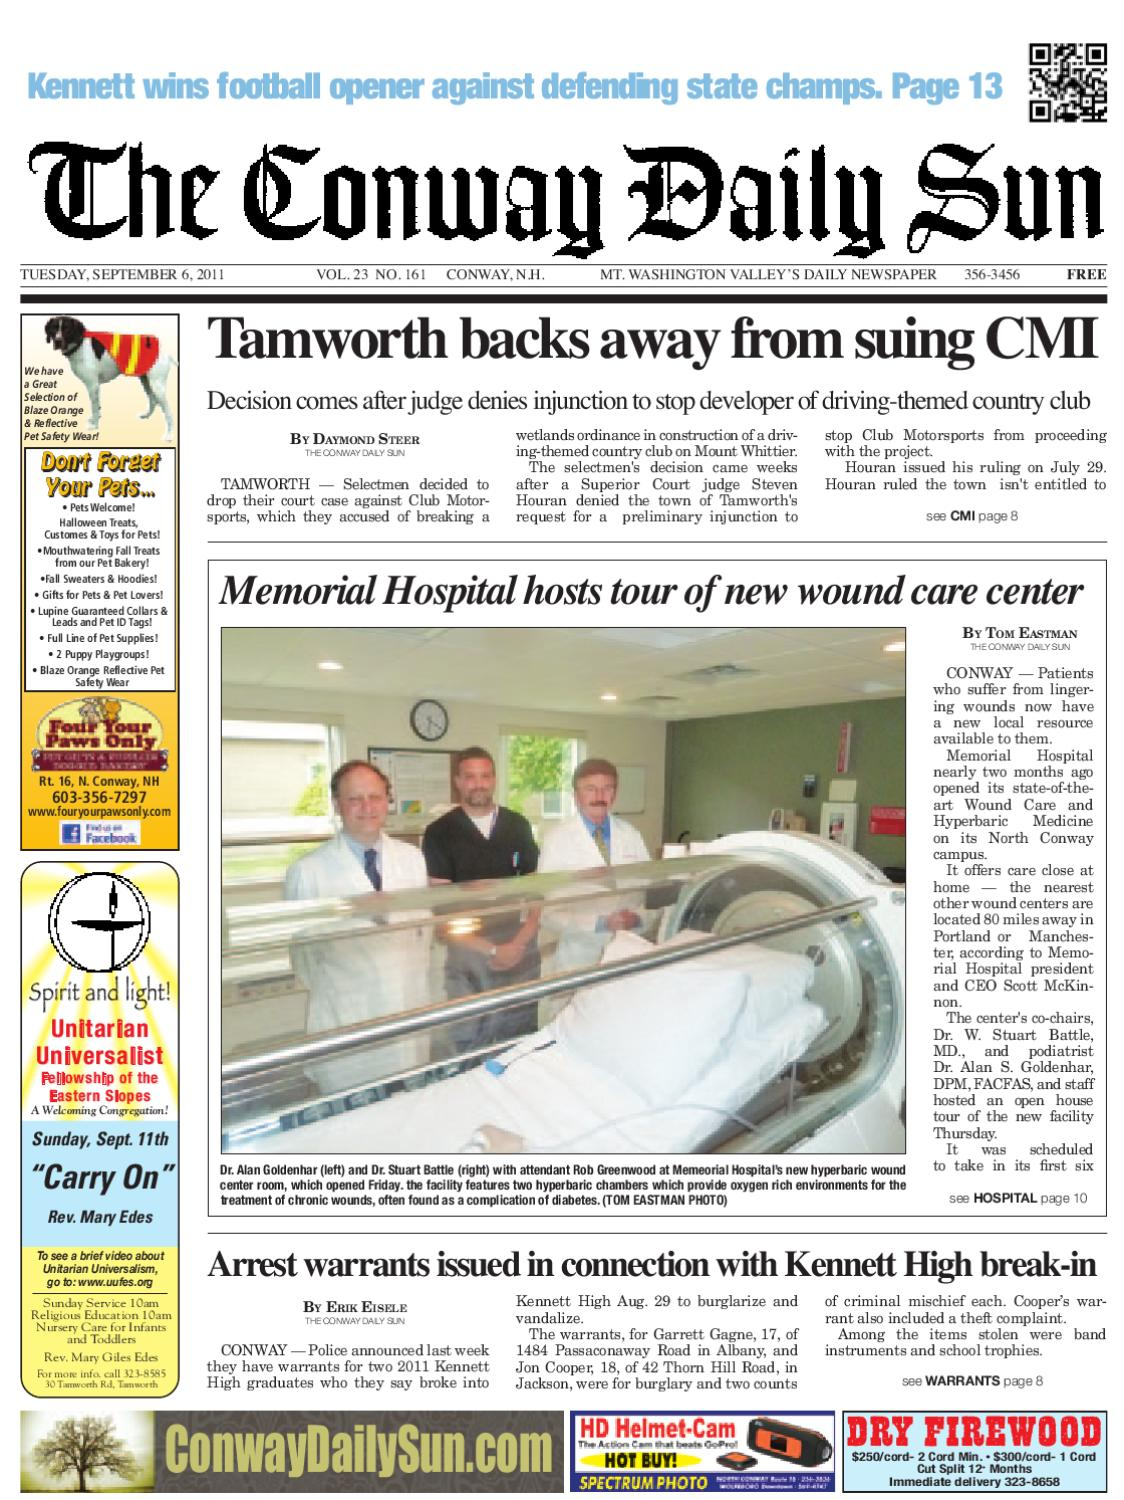 The Conway Daily Sun, Tuesday, September 6, 2011 by Daily Sun - issuu 11b40e2a04c6